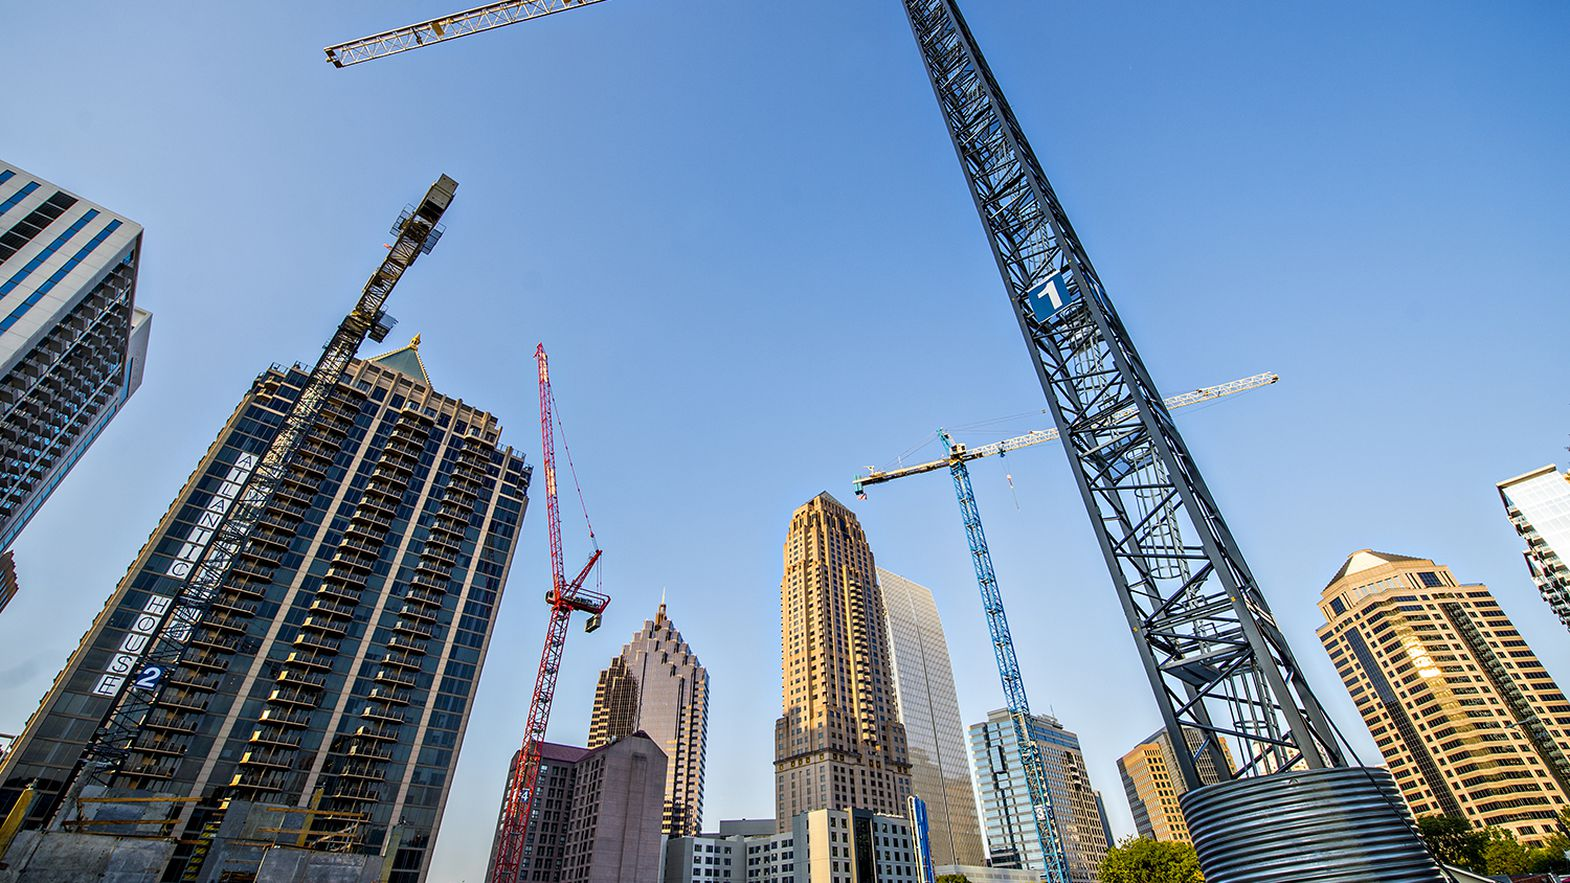 Cranes and skyscrapers build up a city with a blue sky behind it.